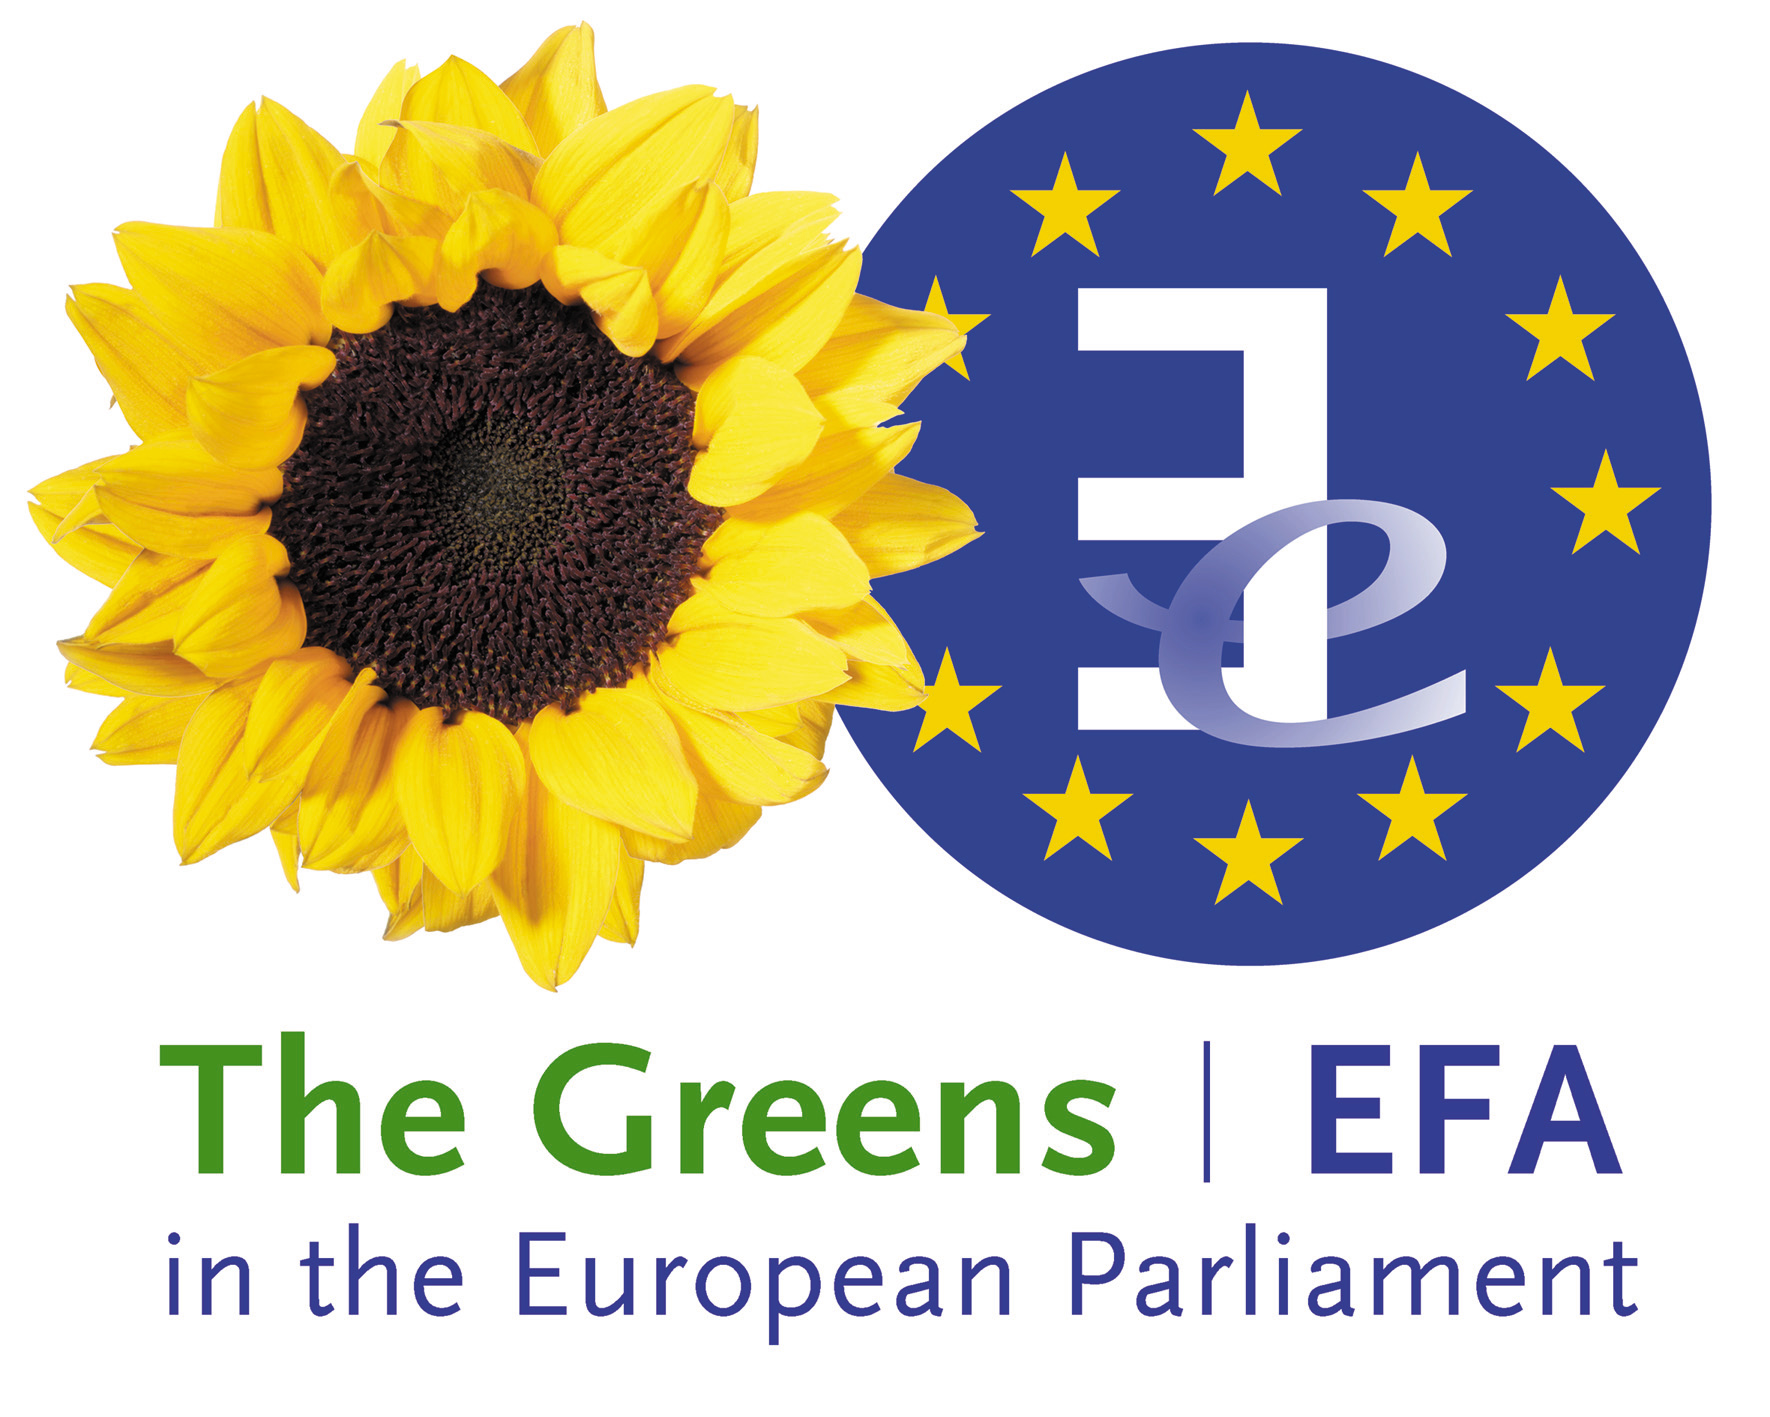 https://europeangreens.eu/sites/europeangreens.eu/files/typo3_pages/images/GreensEFAlogo.jpg